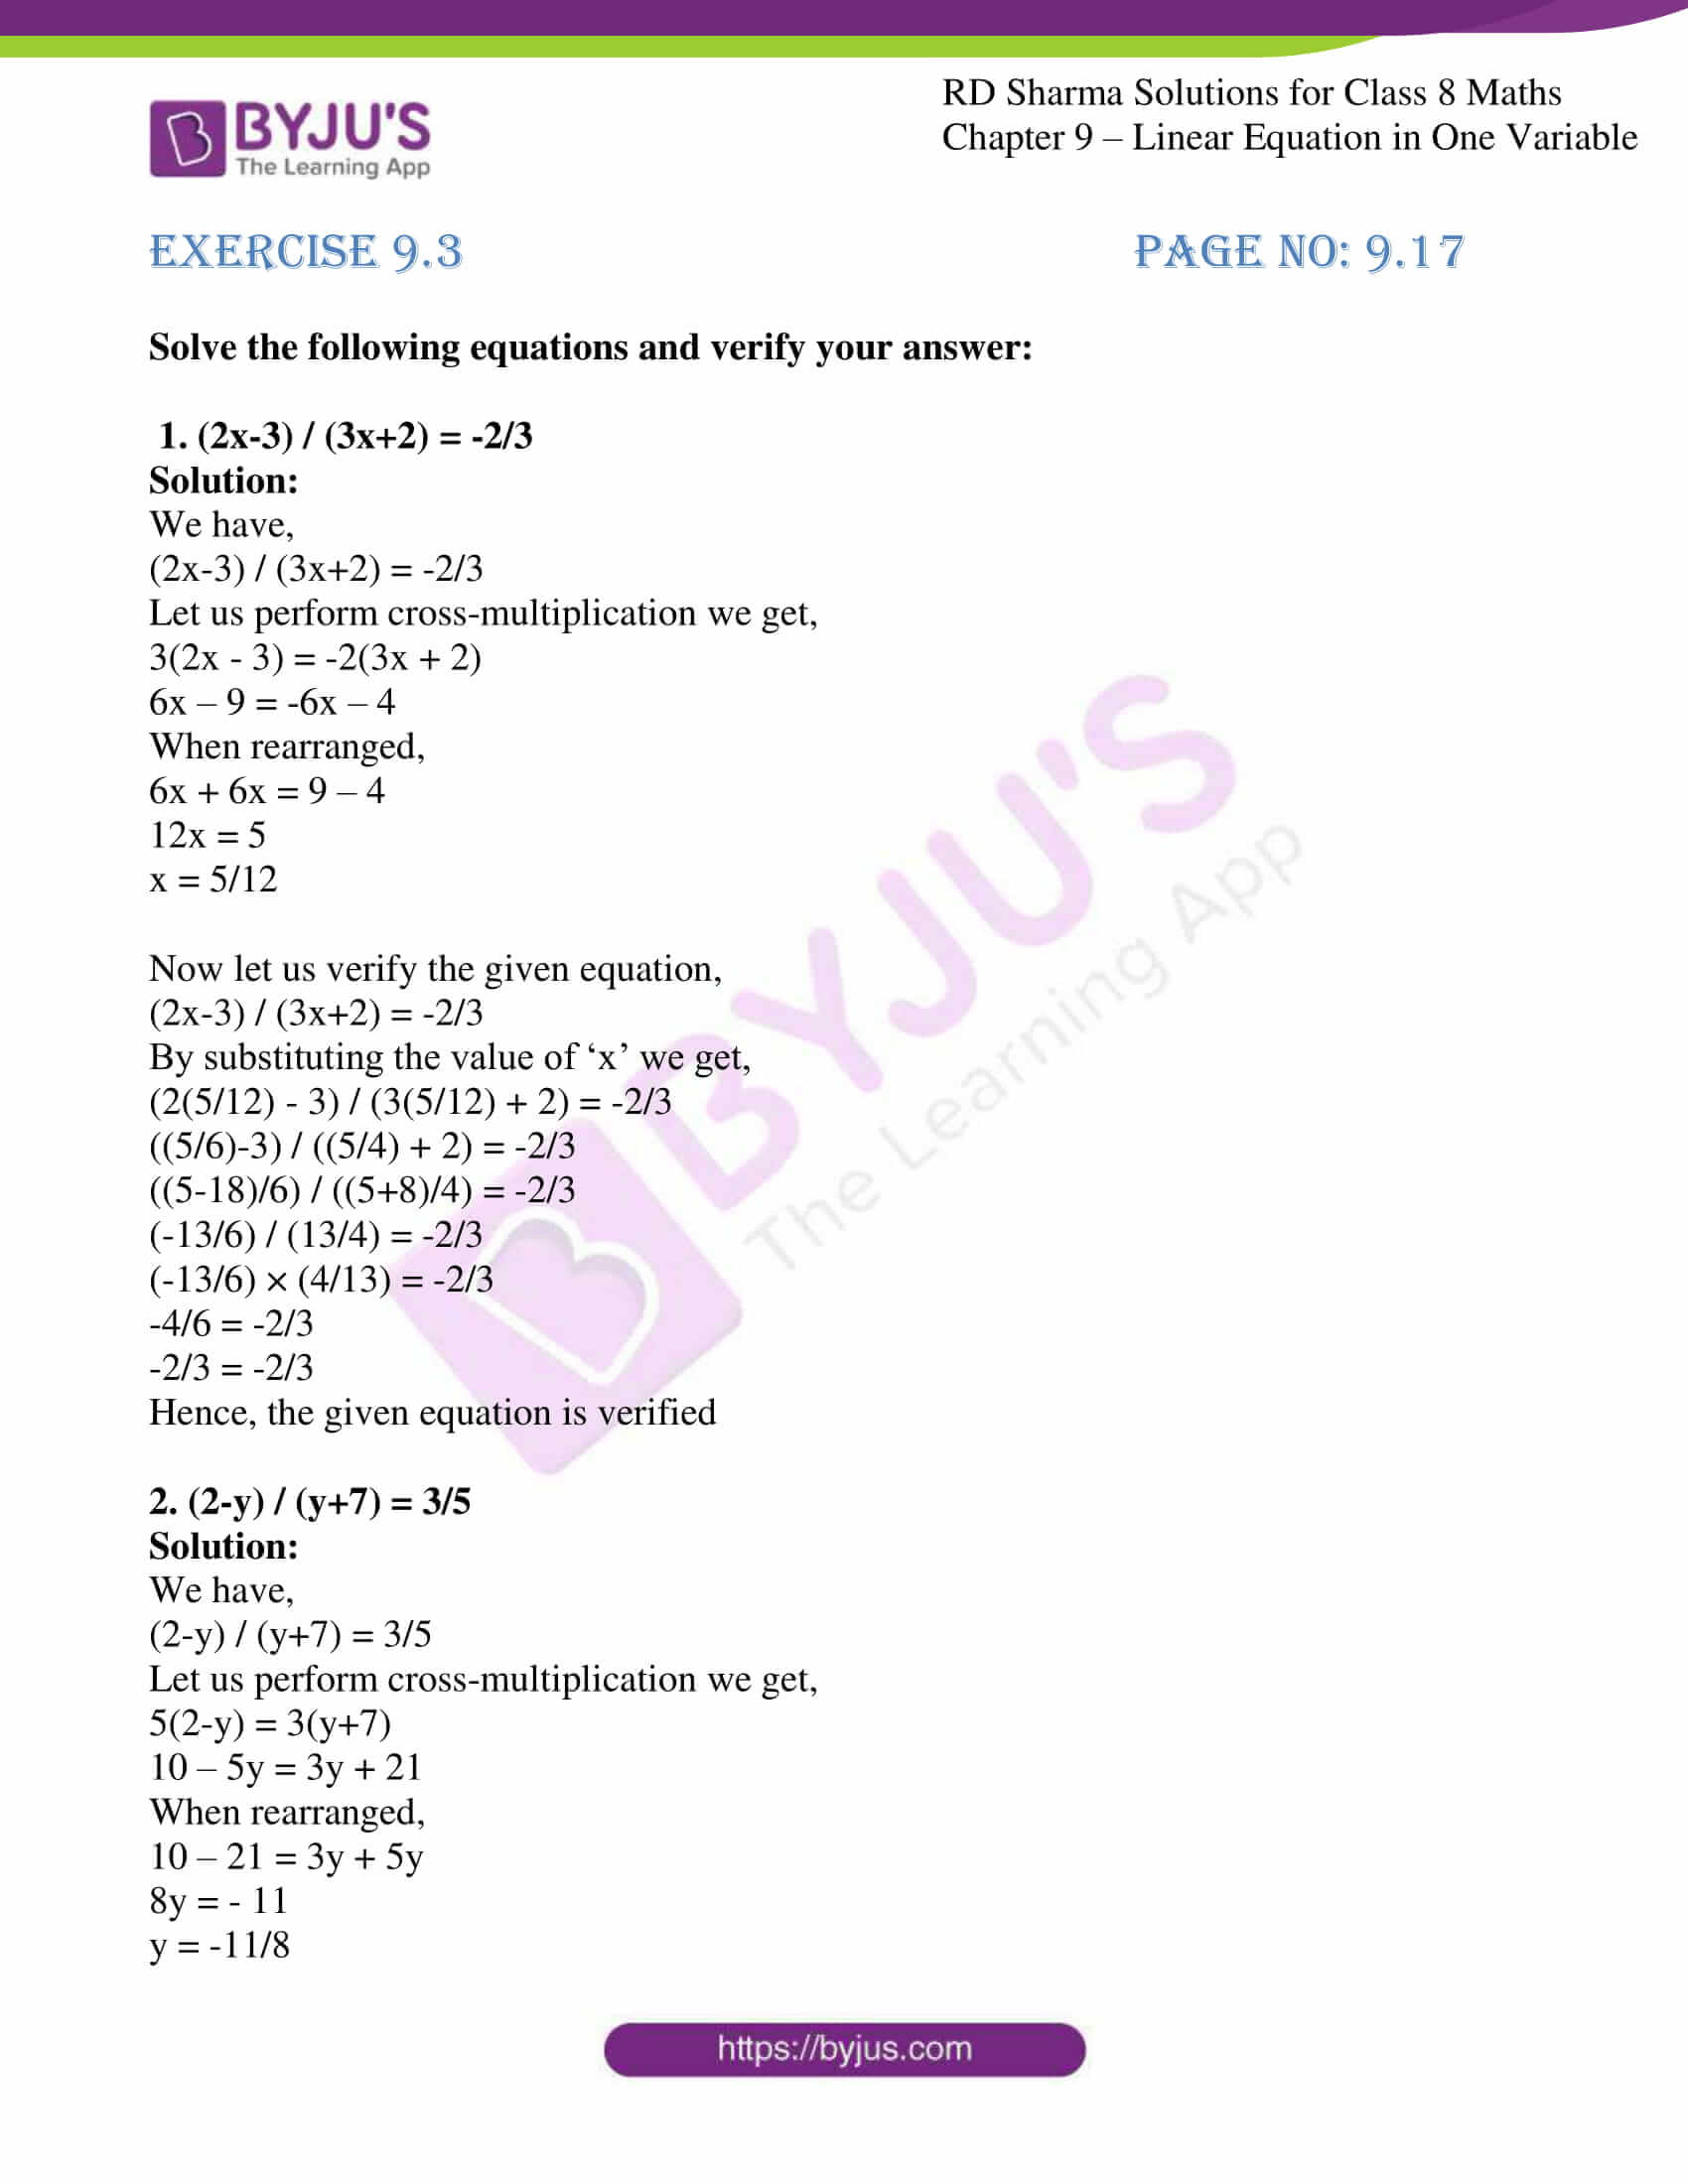 rd sharma class 8 maths chapter 9 exercise 3 01